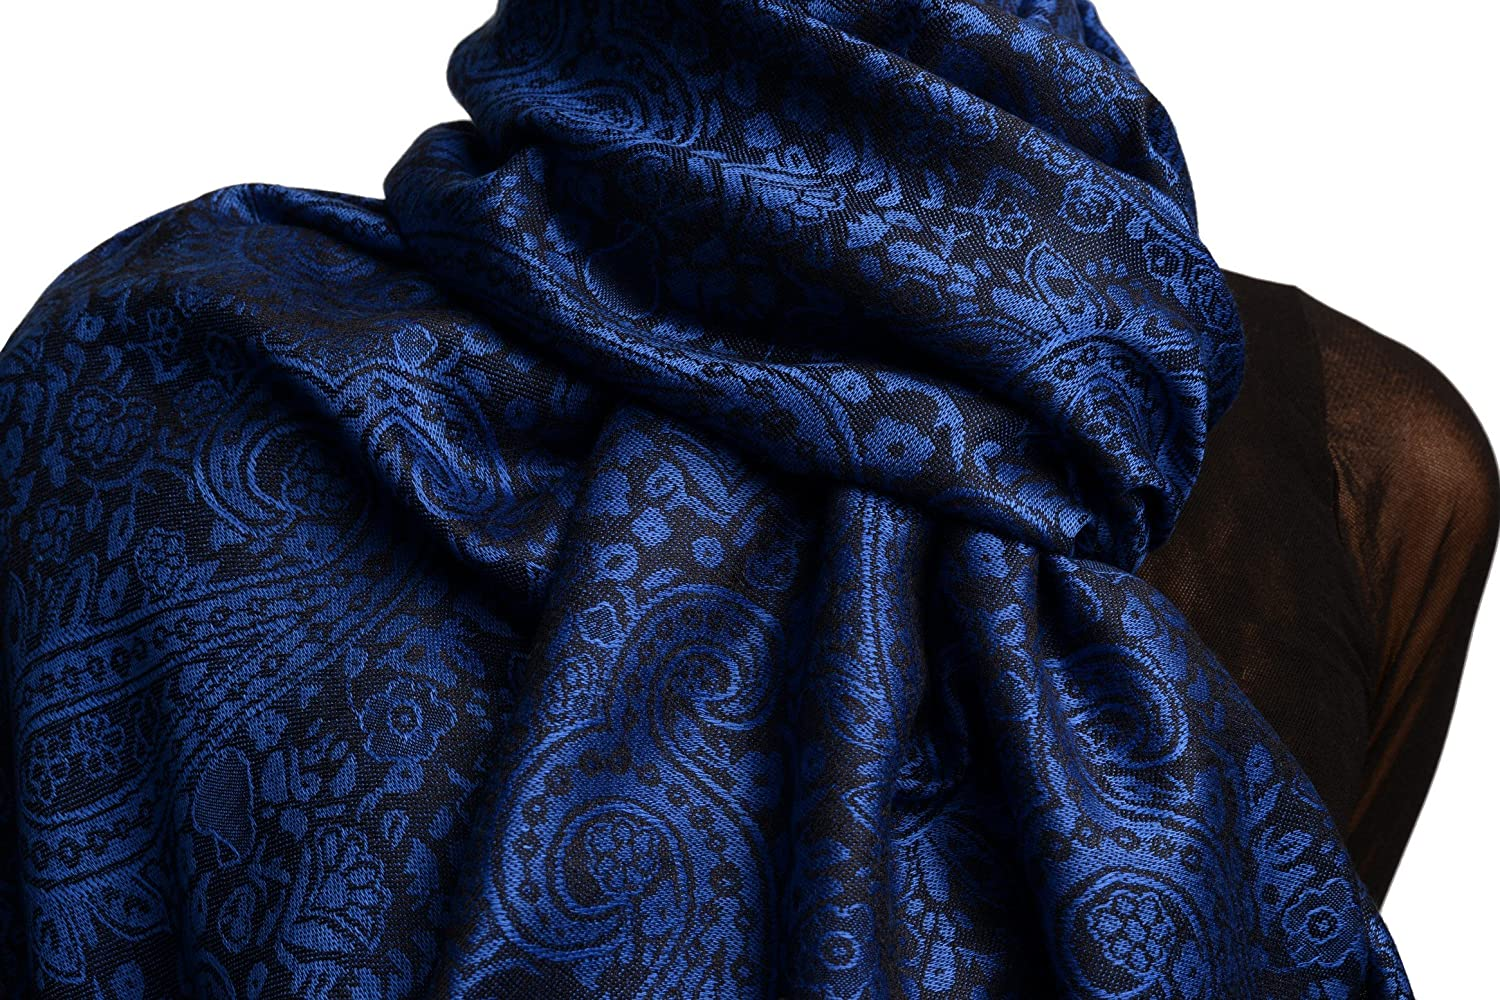 Medium Blue & Black Paisleys Pashmina Feel With Tassels - Scarf